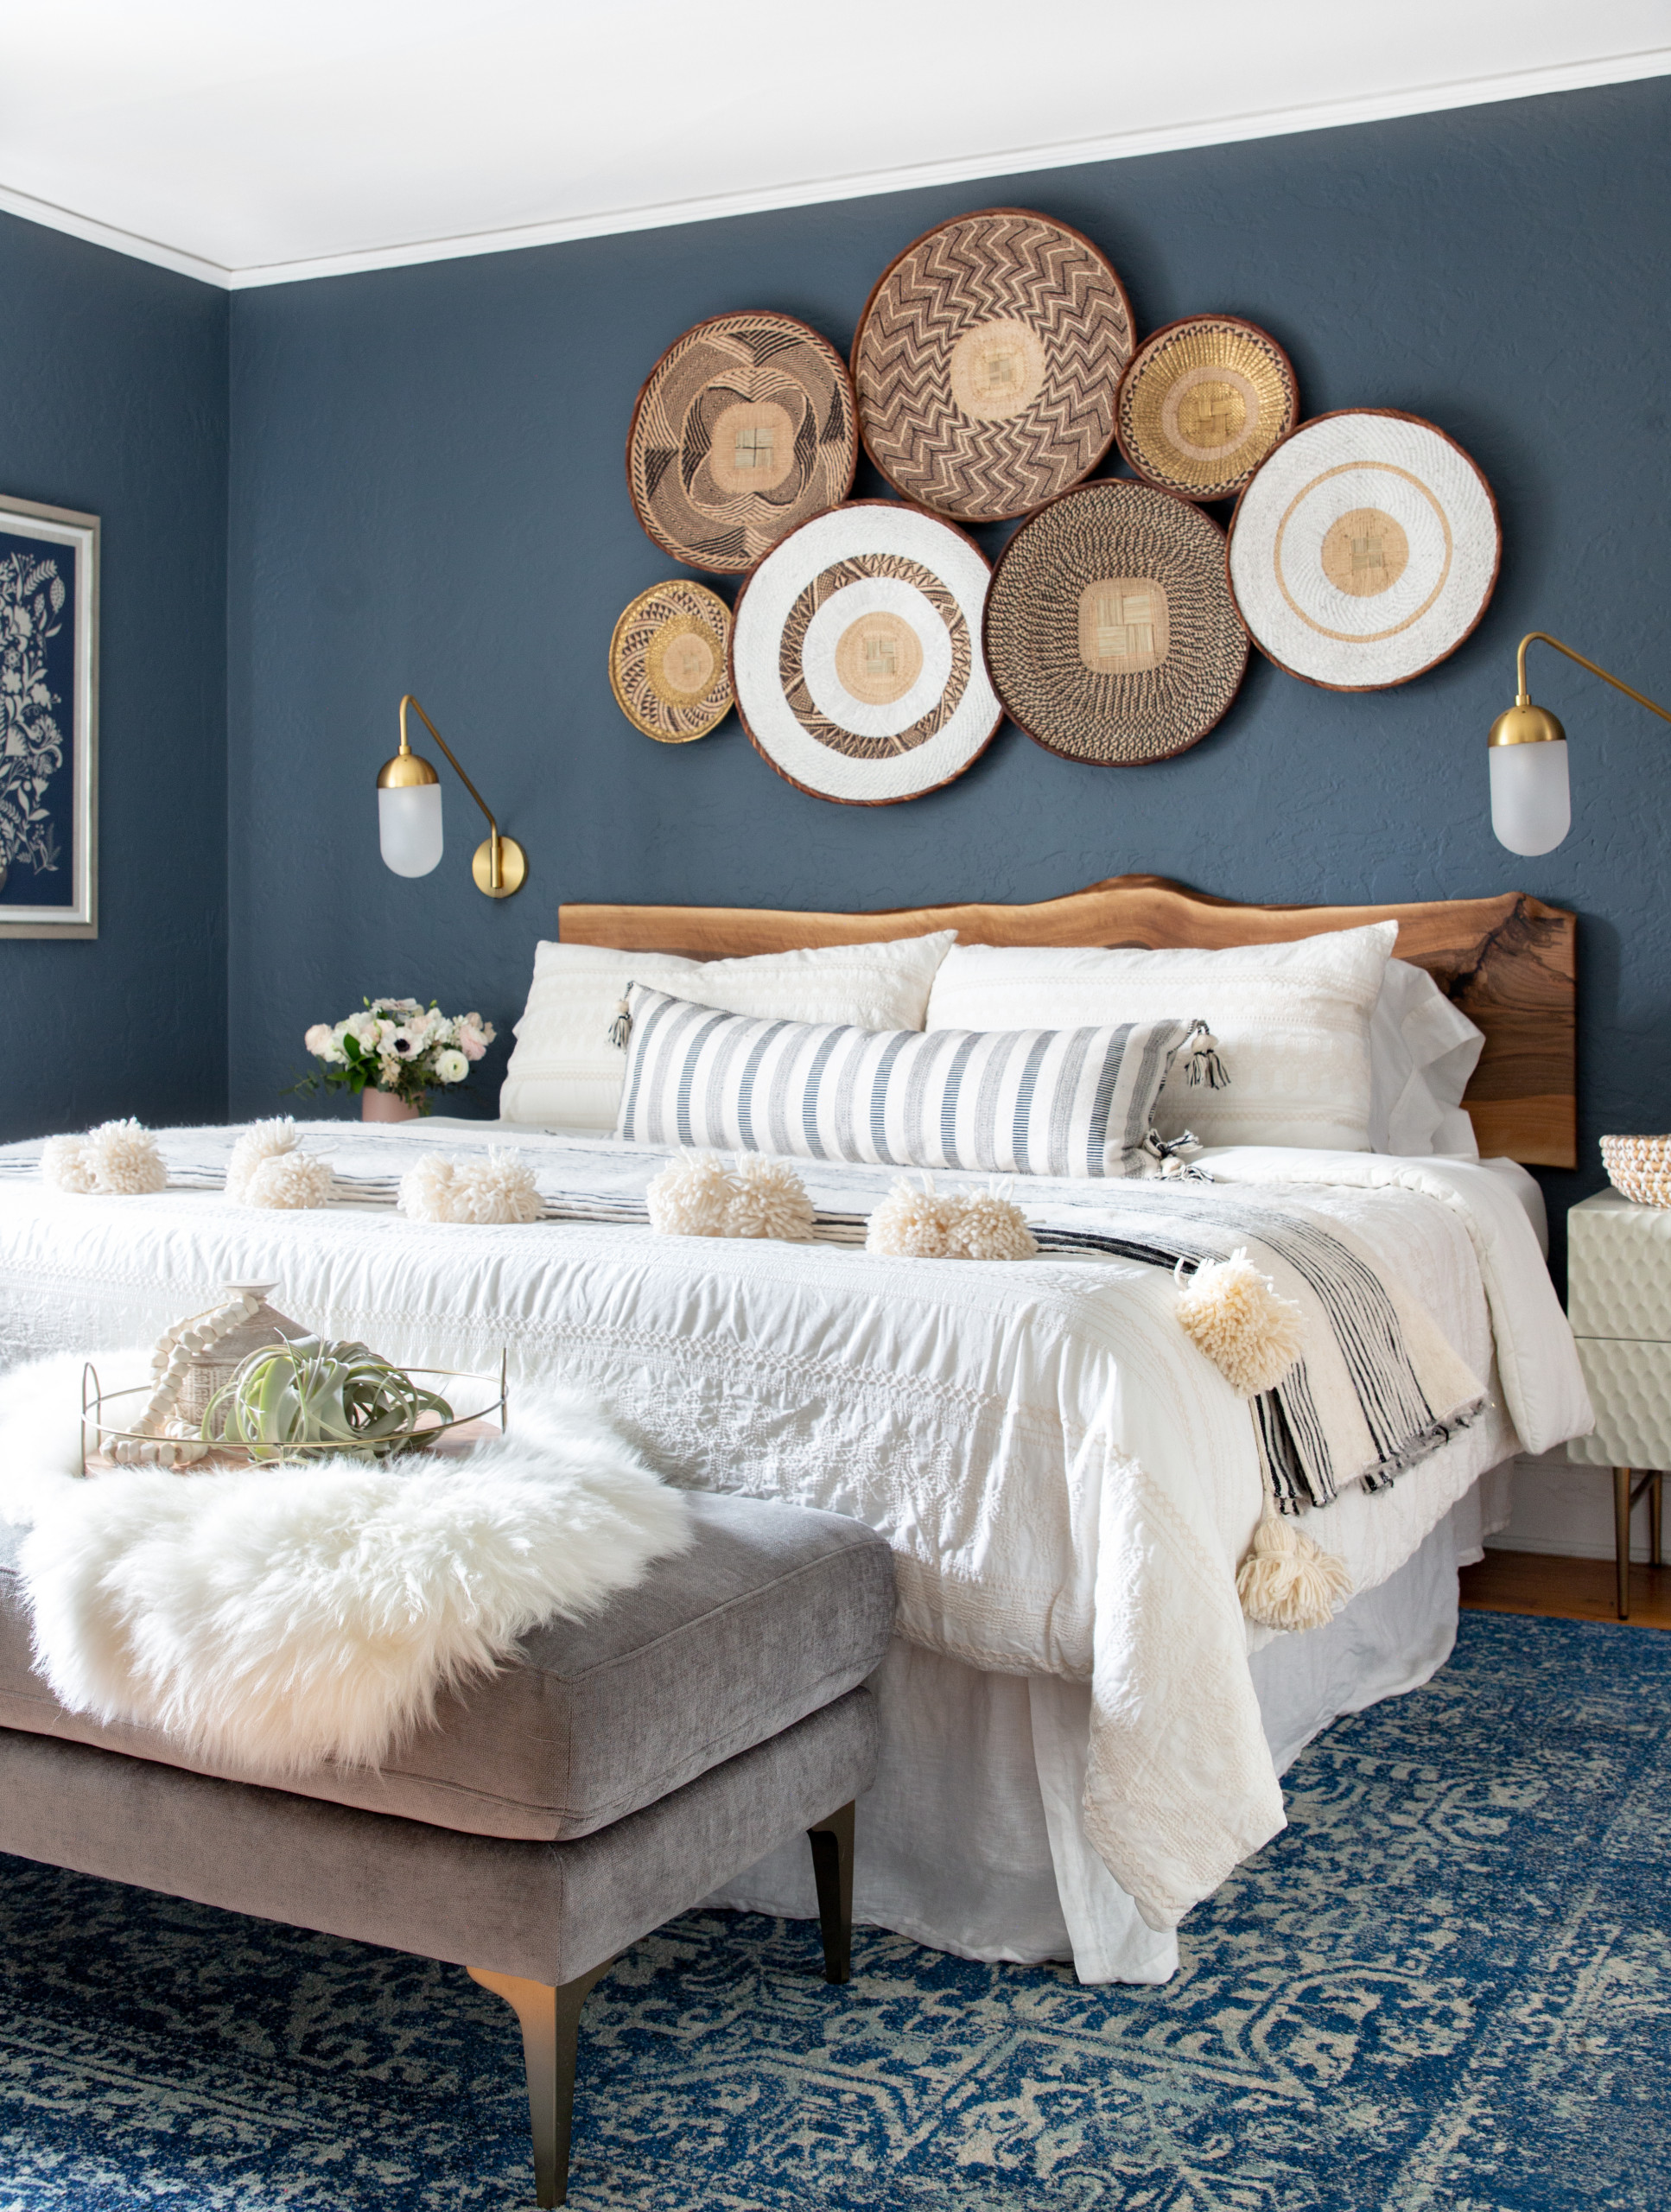 5 Beautiful Eclectic Bedroom Pictures & Ideas - January, 5  Houzz